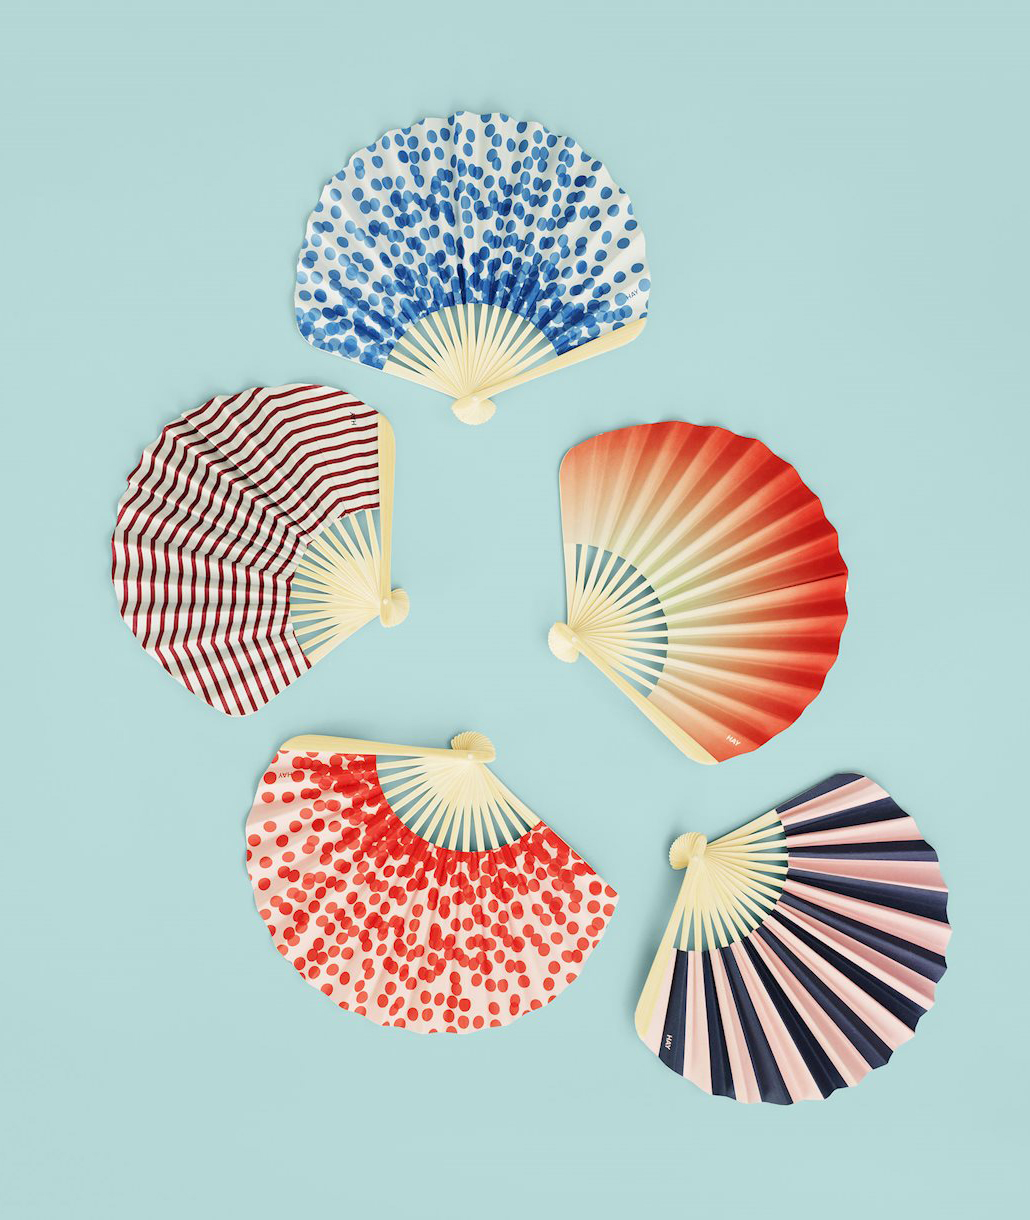 Colorful Paper Fans with Patterns by HAY